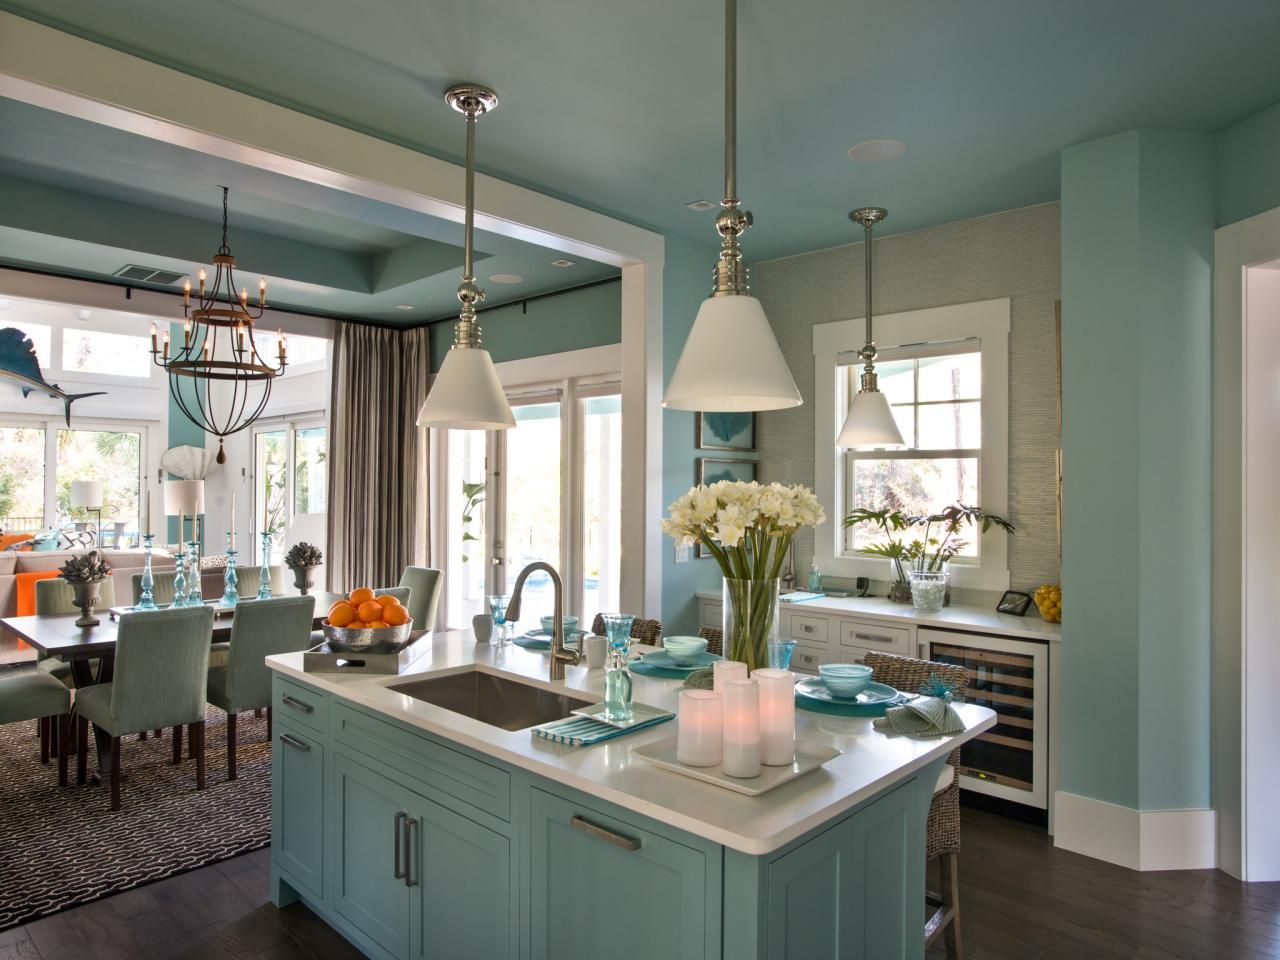 Color Ideas For Painting Kitchen Cabinets Hgtv Pictures Kitchen Cabinet Color Options Kitchen Cabinet Colors Home Kitchens